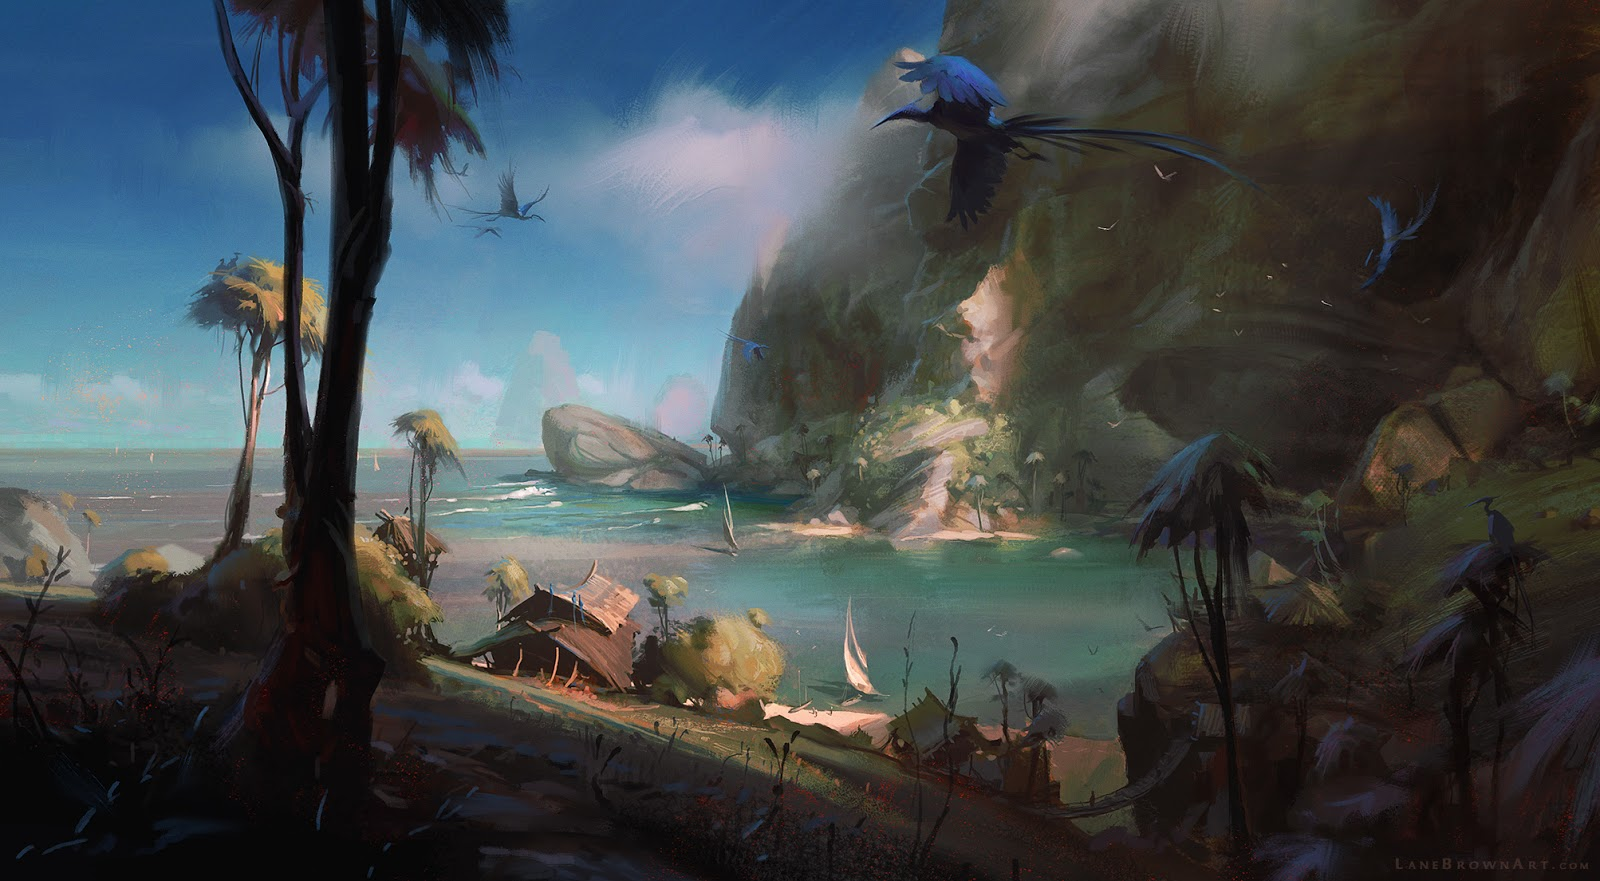 Illustrations and Concept Art By Lane Brown